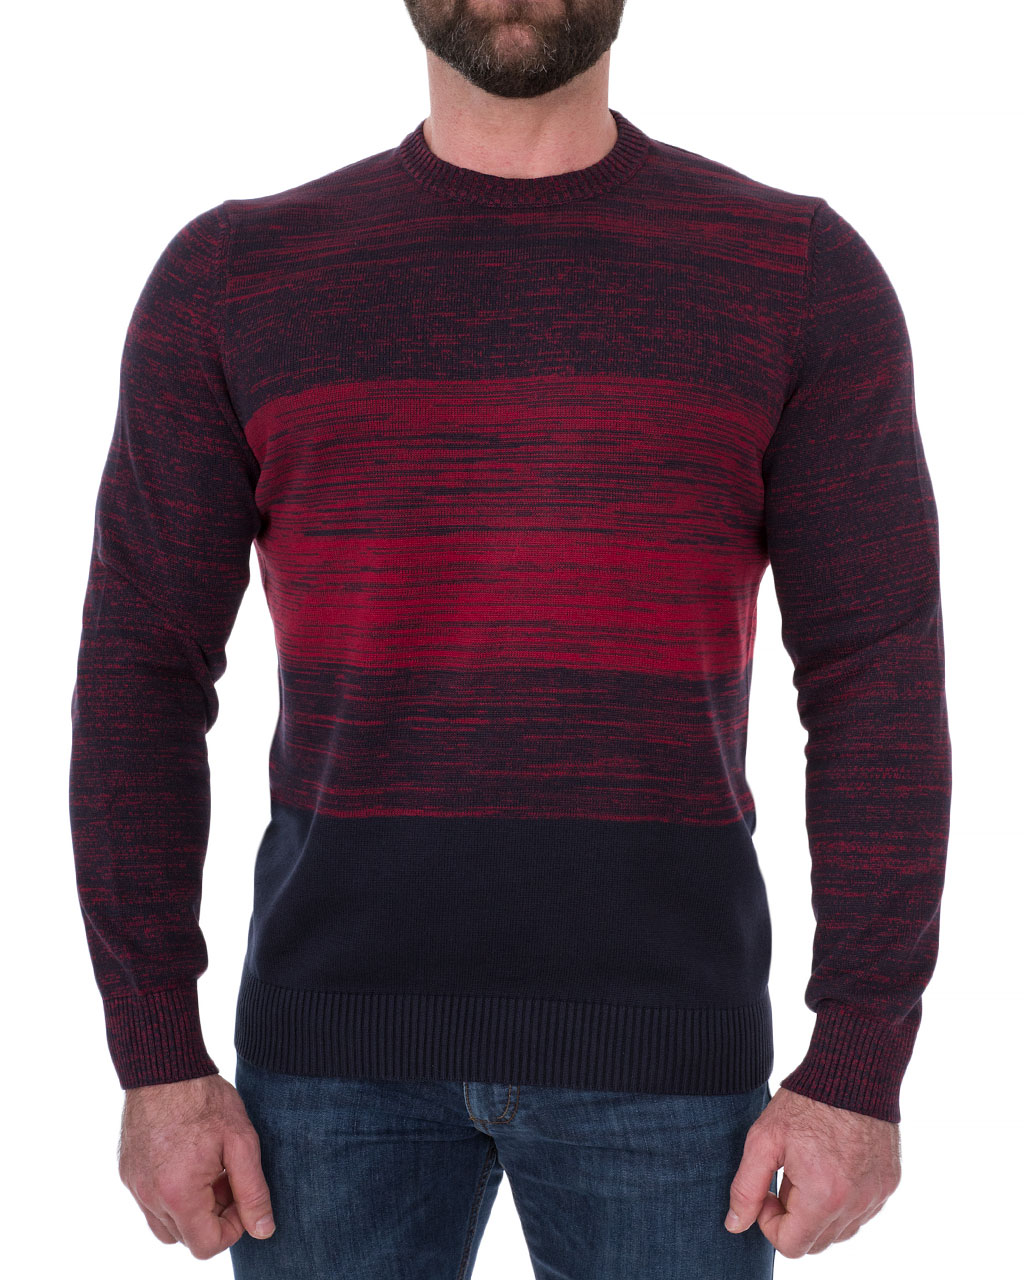 Men's jumper 7450-45522-960/19-20--2 (1)